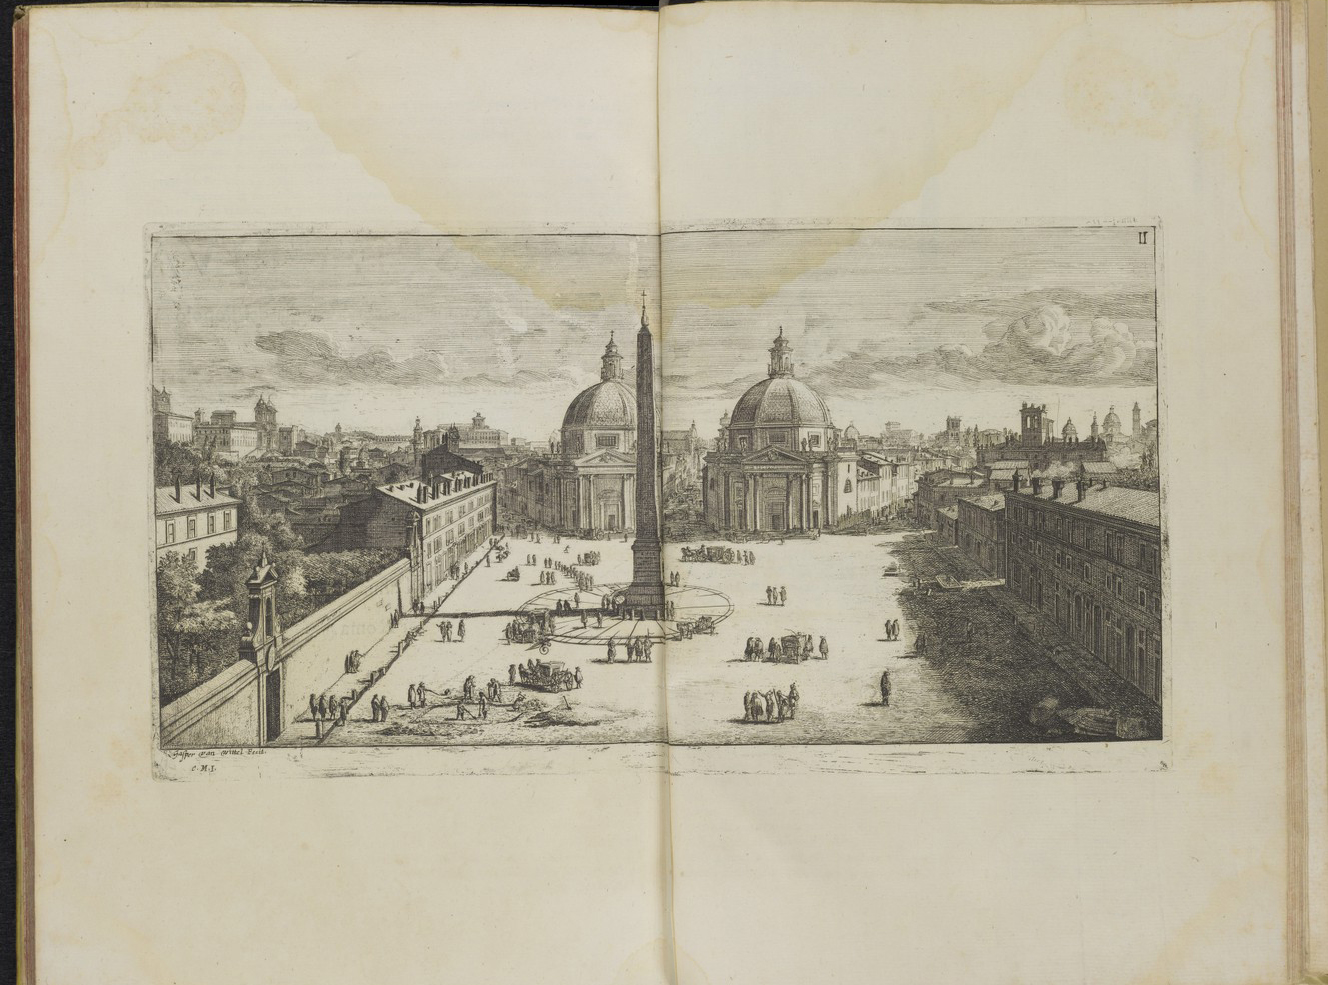 View of the Piazza del Popolo, Rome, by Gomar Wouters.